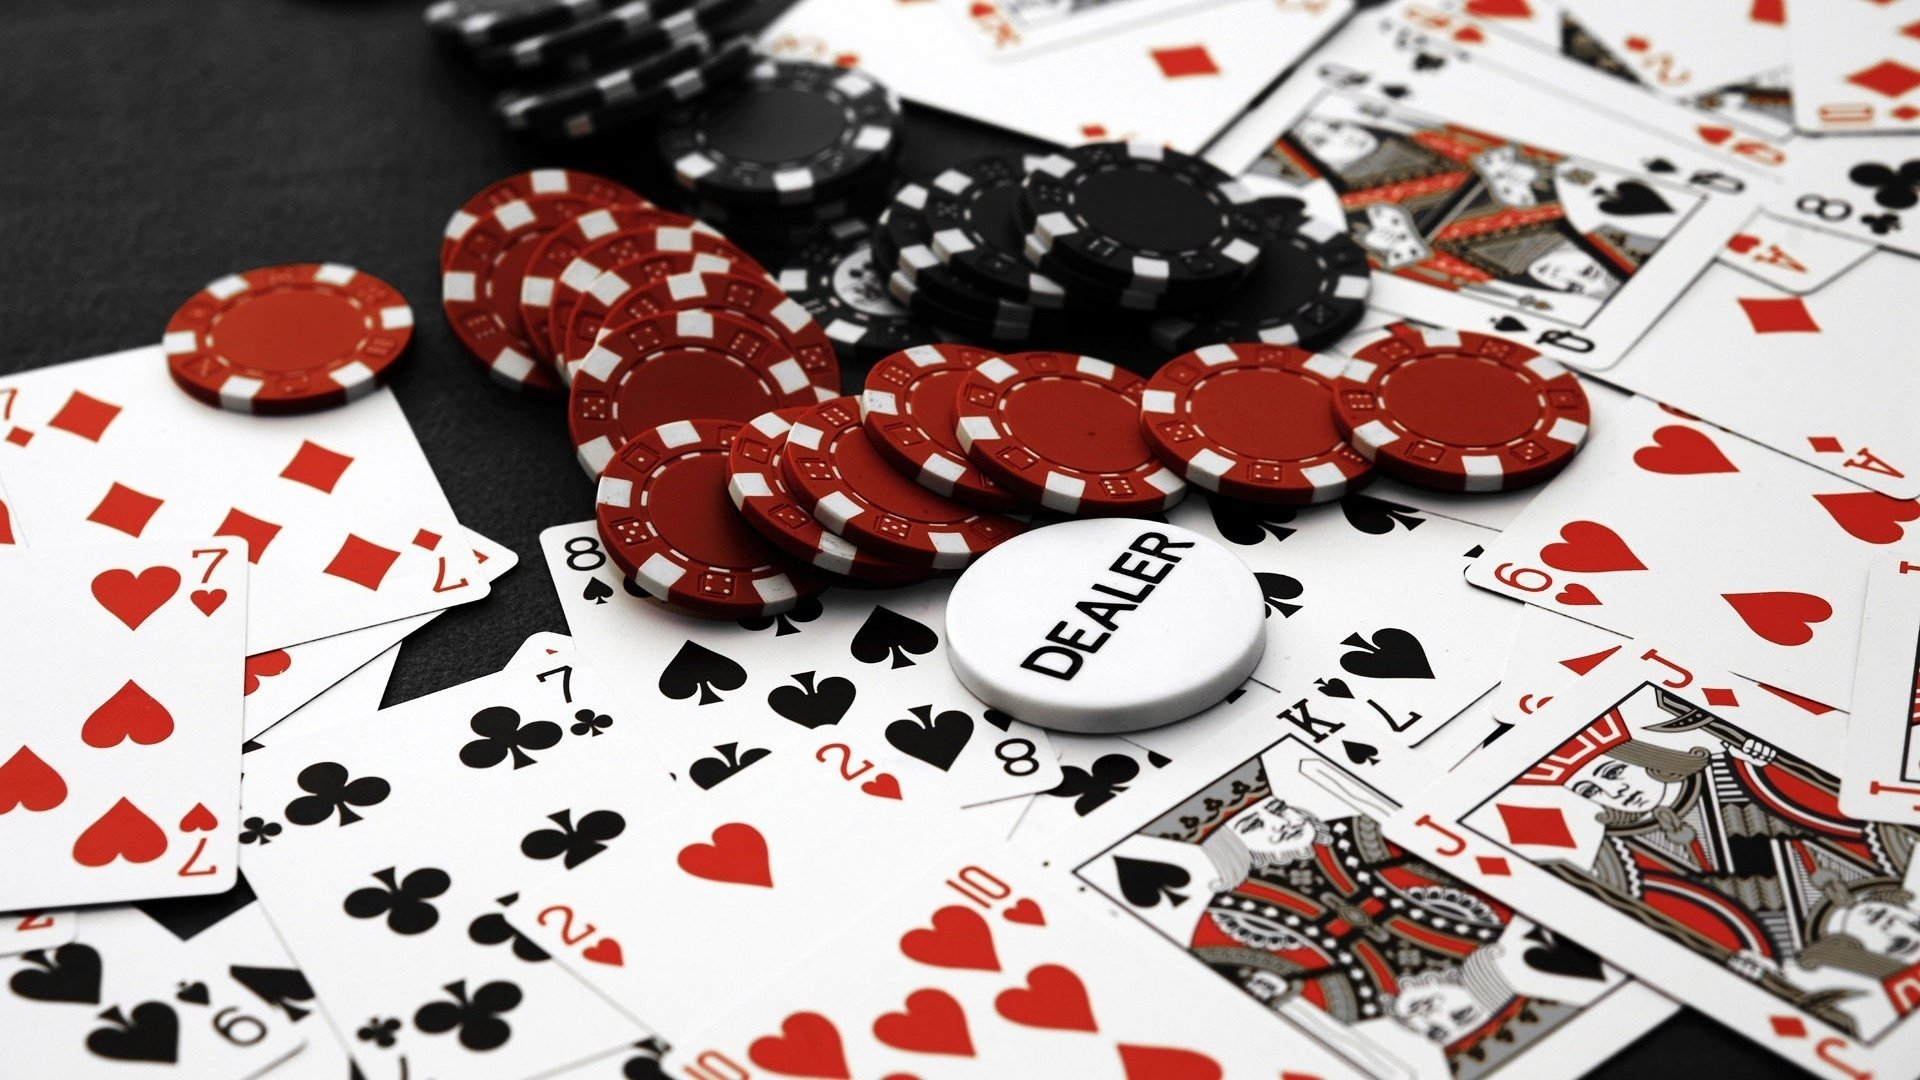 48 poker hd wallpapers | background images - wallpaper abyss